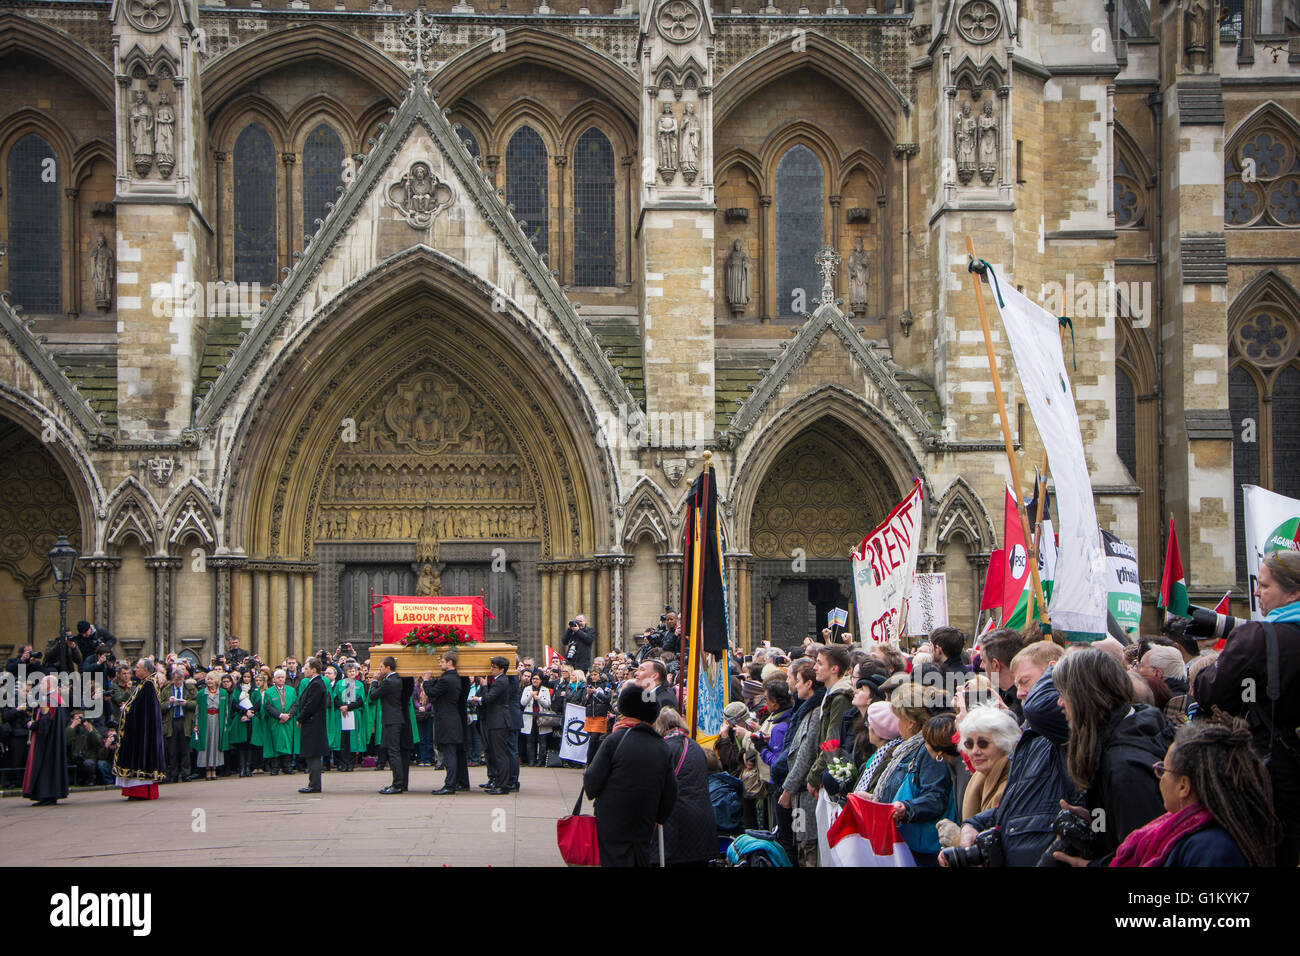 Onlookers and procession at St. Margaret's Church for Tony Benn's funeral - Stock Image